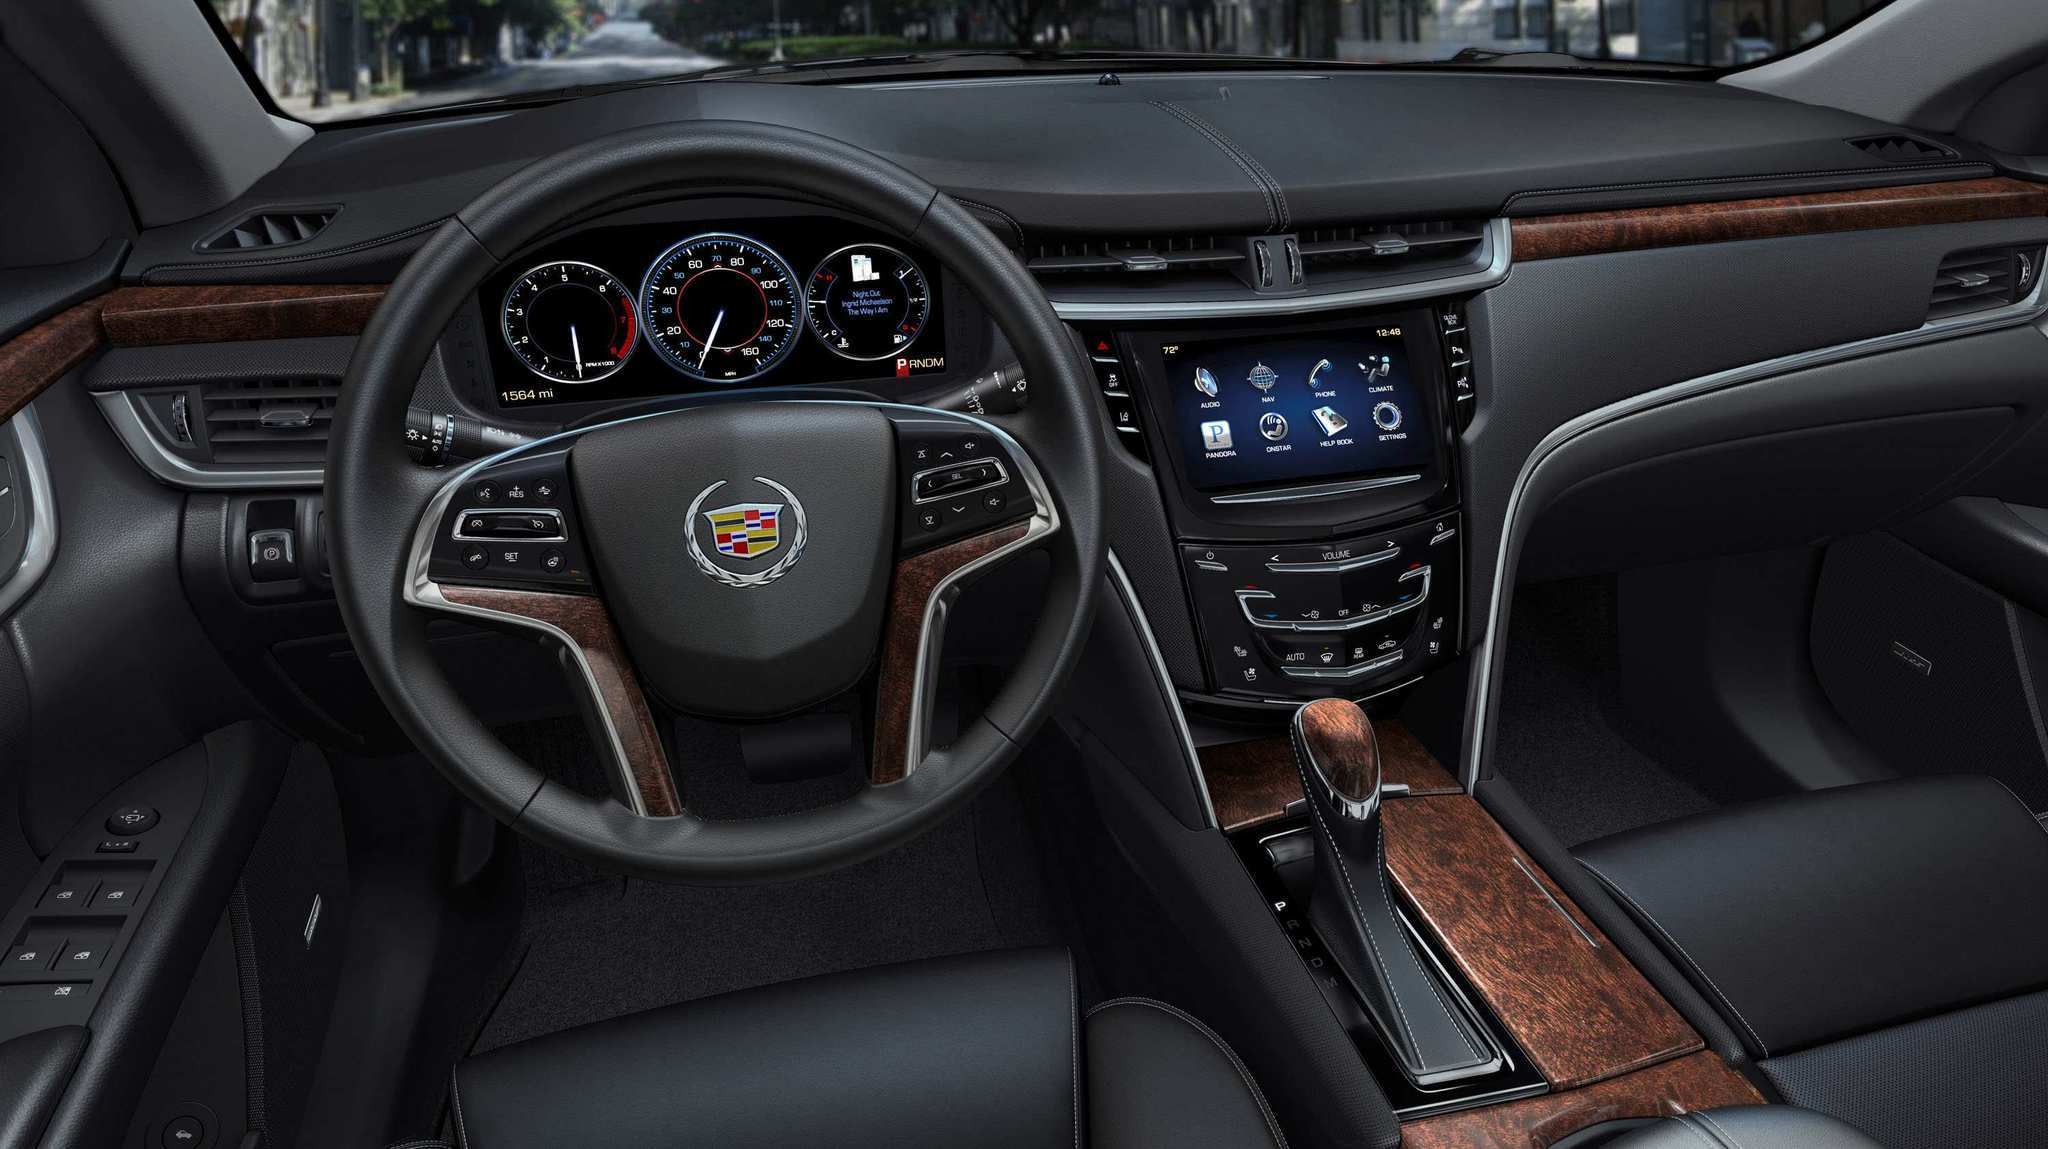 The 2013 Cadillac XTS - Pleasant interior